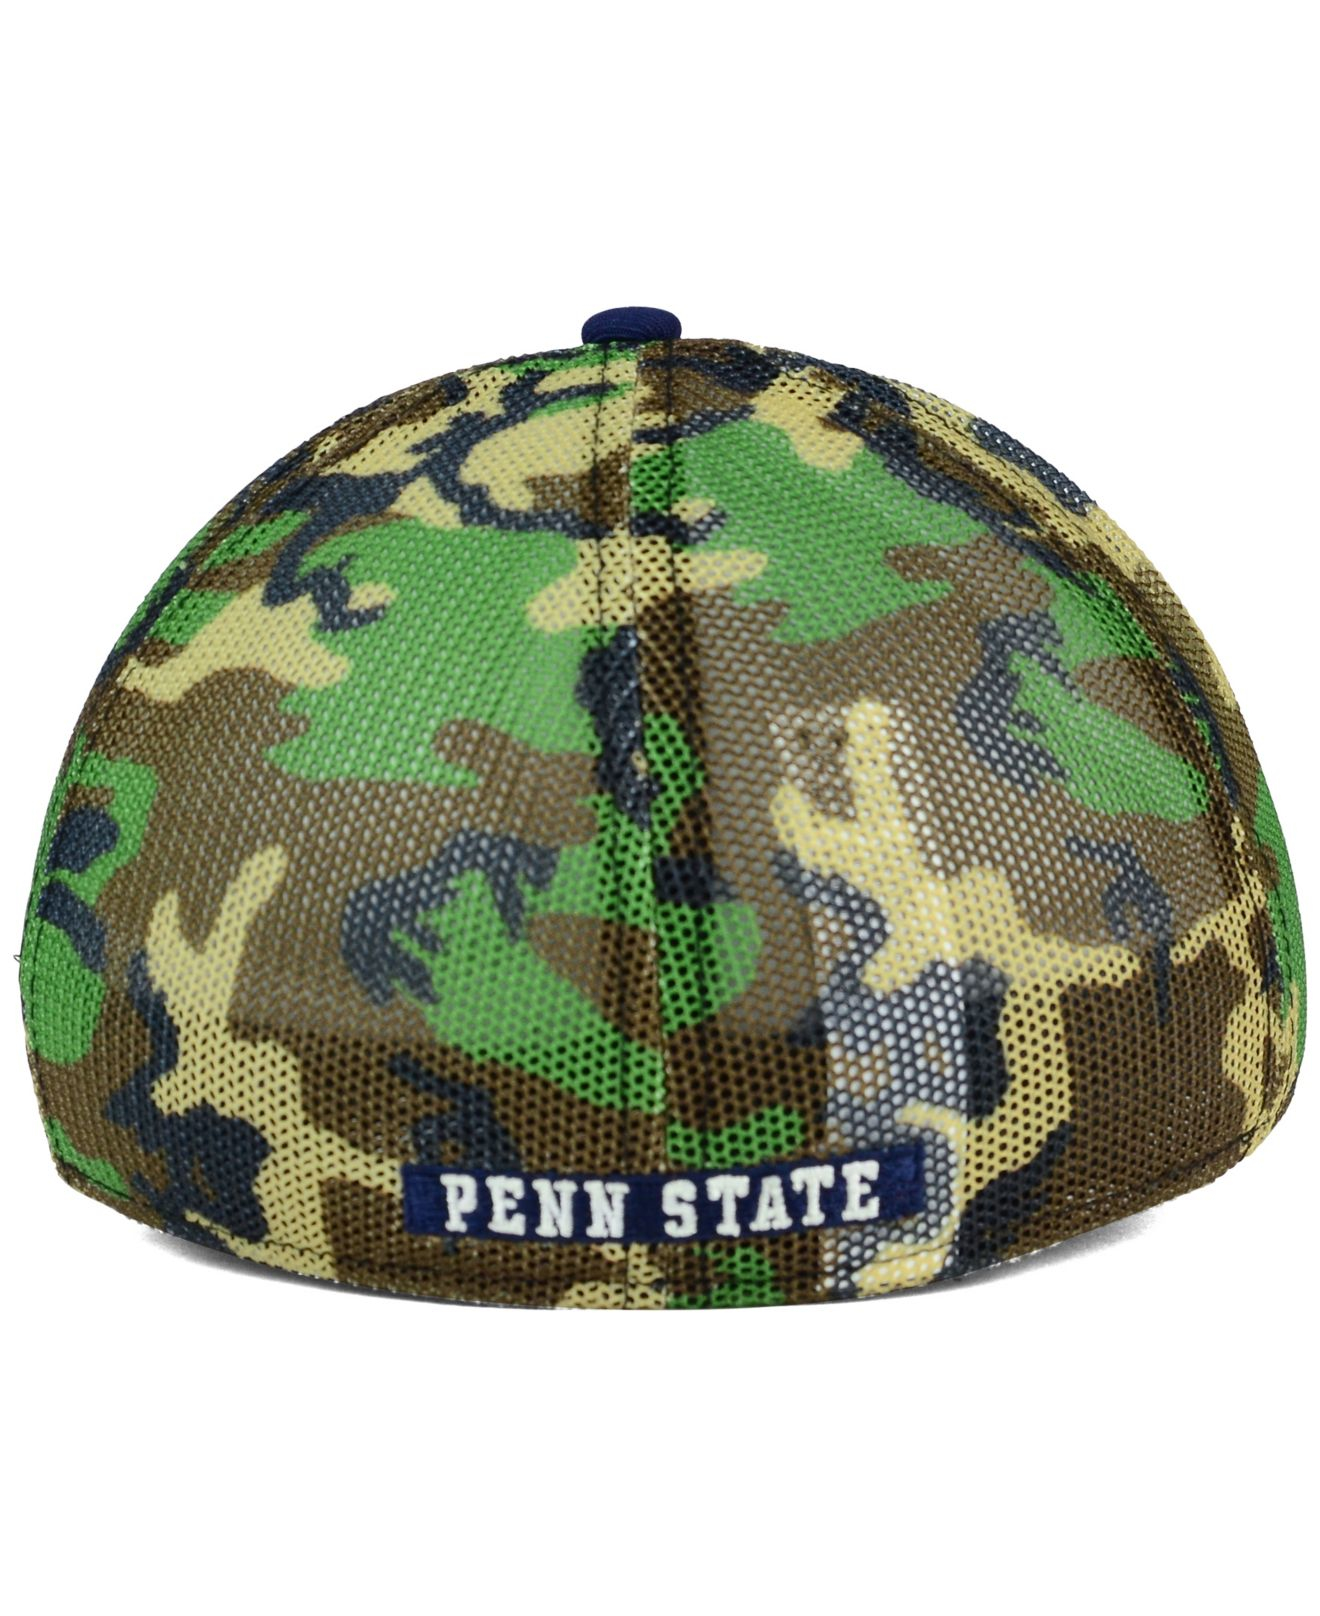 99a054233 ... reduced lyst nike penn state nittany lions camo hook swooshflex cap in  6e689 277d8